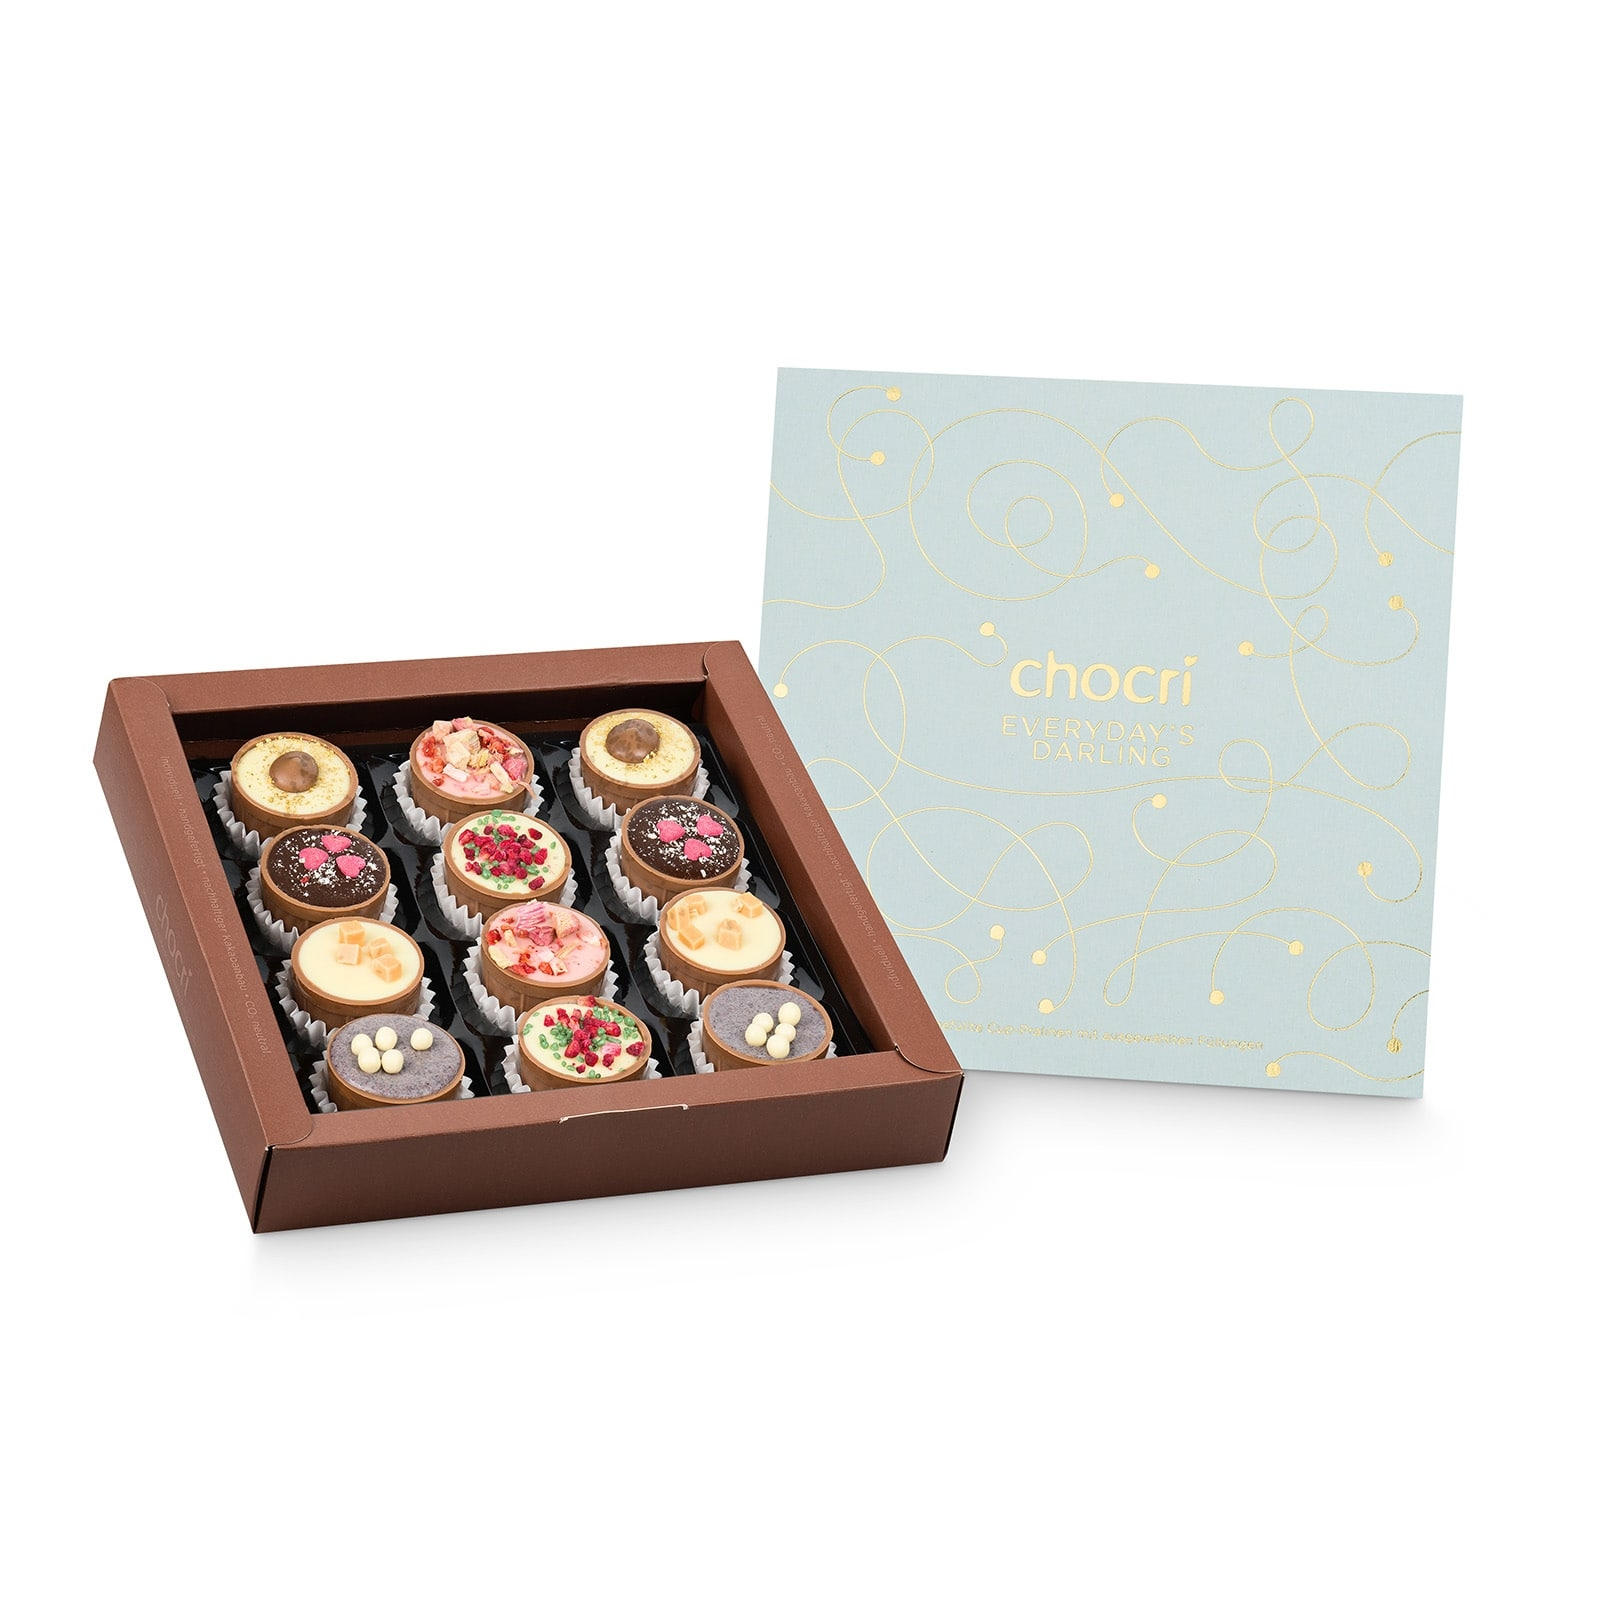 Köstlichsüsses - chocri 'Everyday's Darling' Cup Pralinenbox - Onlineshop Chocri